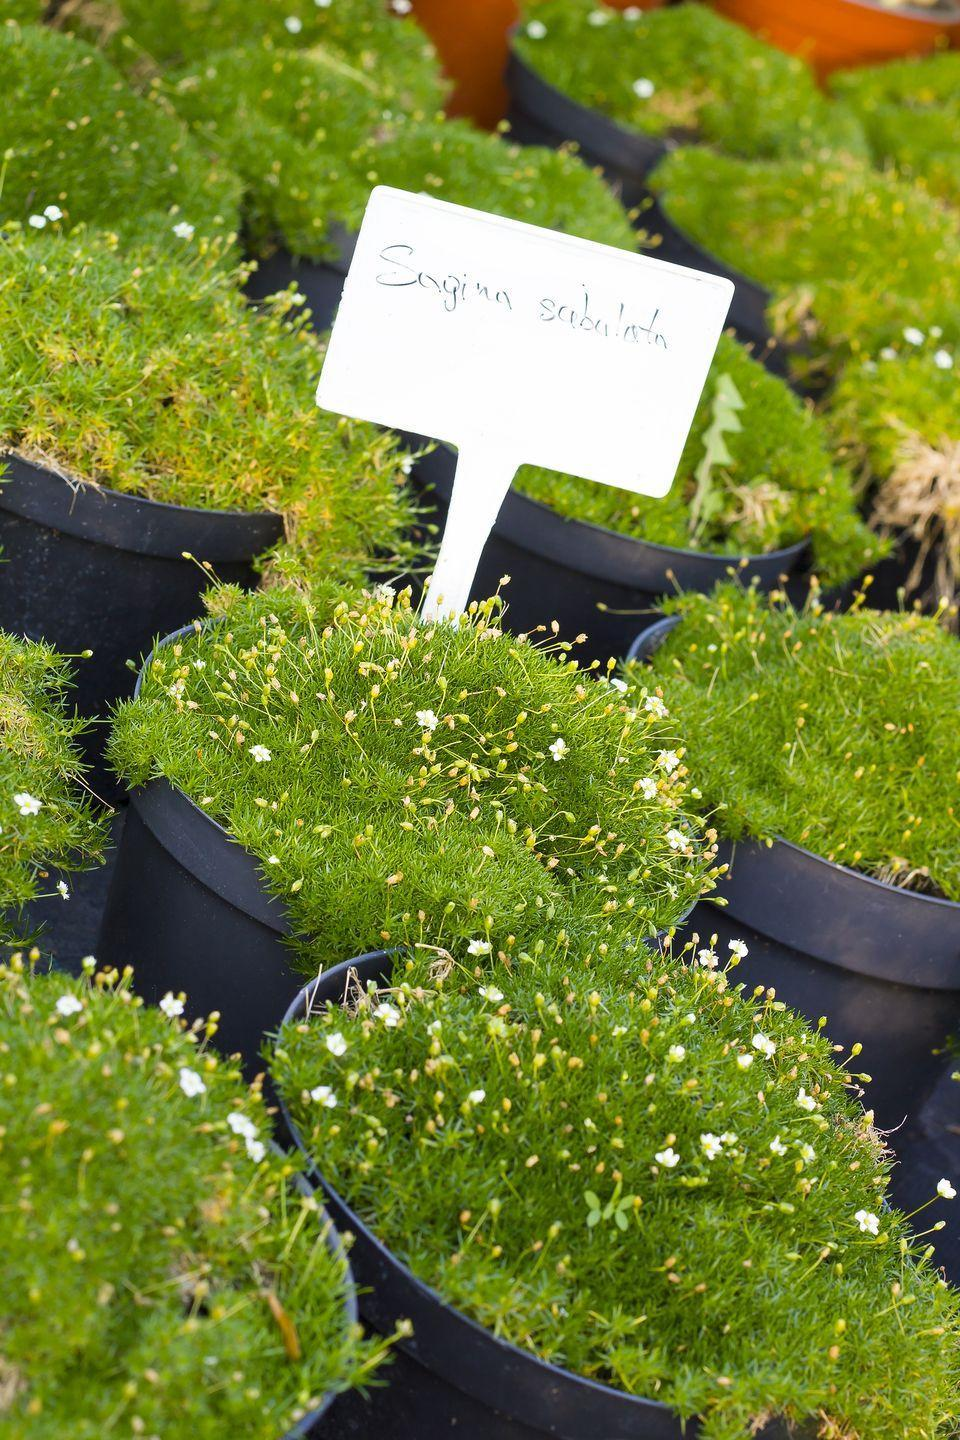 """<p>The super soft moss-like foliage of this low-growing plant form a dense mat that's beautiful most of the year. In the spring, minuscule daisy-like flowers pop up, adding to its charm. Irish moss is perfect edging walks or in between stepping stones for an English country garden feel. This lush most requires part to full sun to thrive.</p><p><a class=""""link rapid-noclick-resp"""" href=""""https://www.bluestoneperennials.com/SASU"""" rel=""""nofollow noopener"""" target=""""_blank"""" data-ylk=""""slk:SHOP IRISH MOSS"""">SHOP IRISH MOSS</a></p>"""